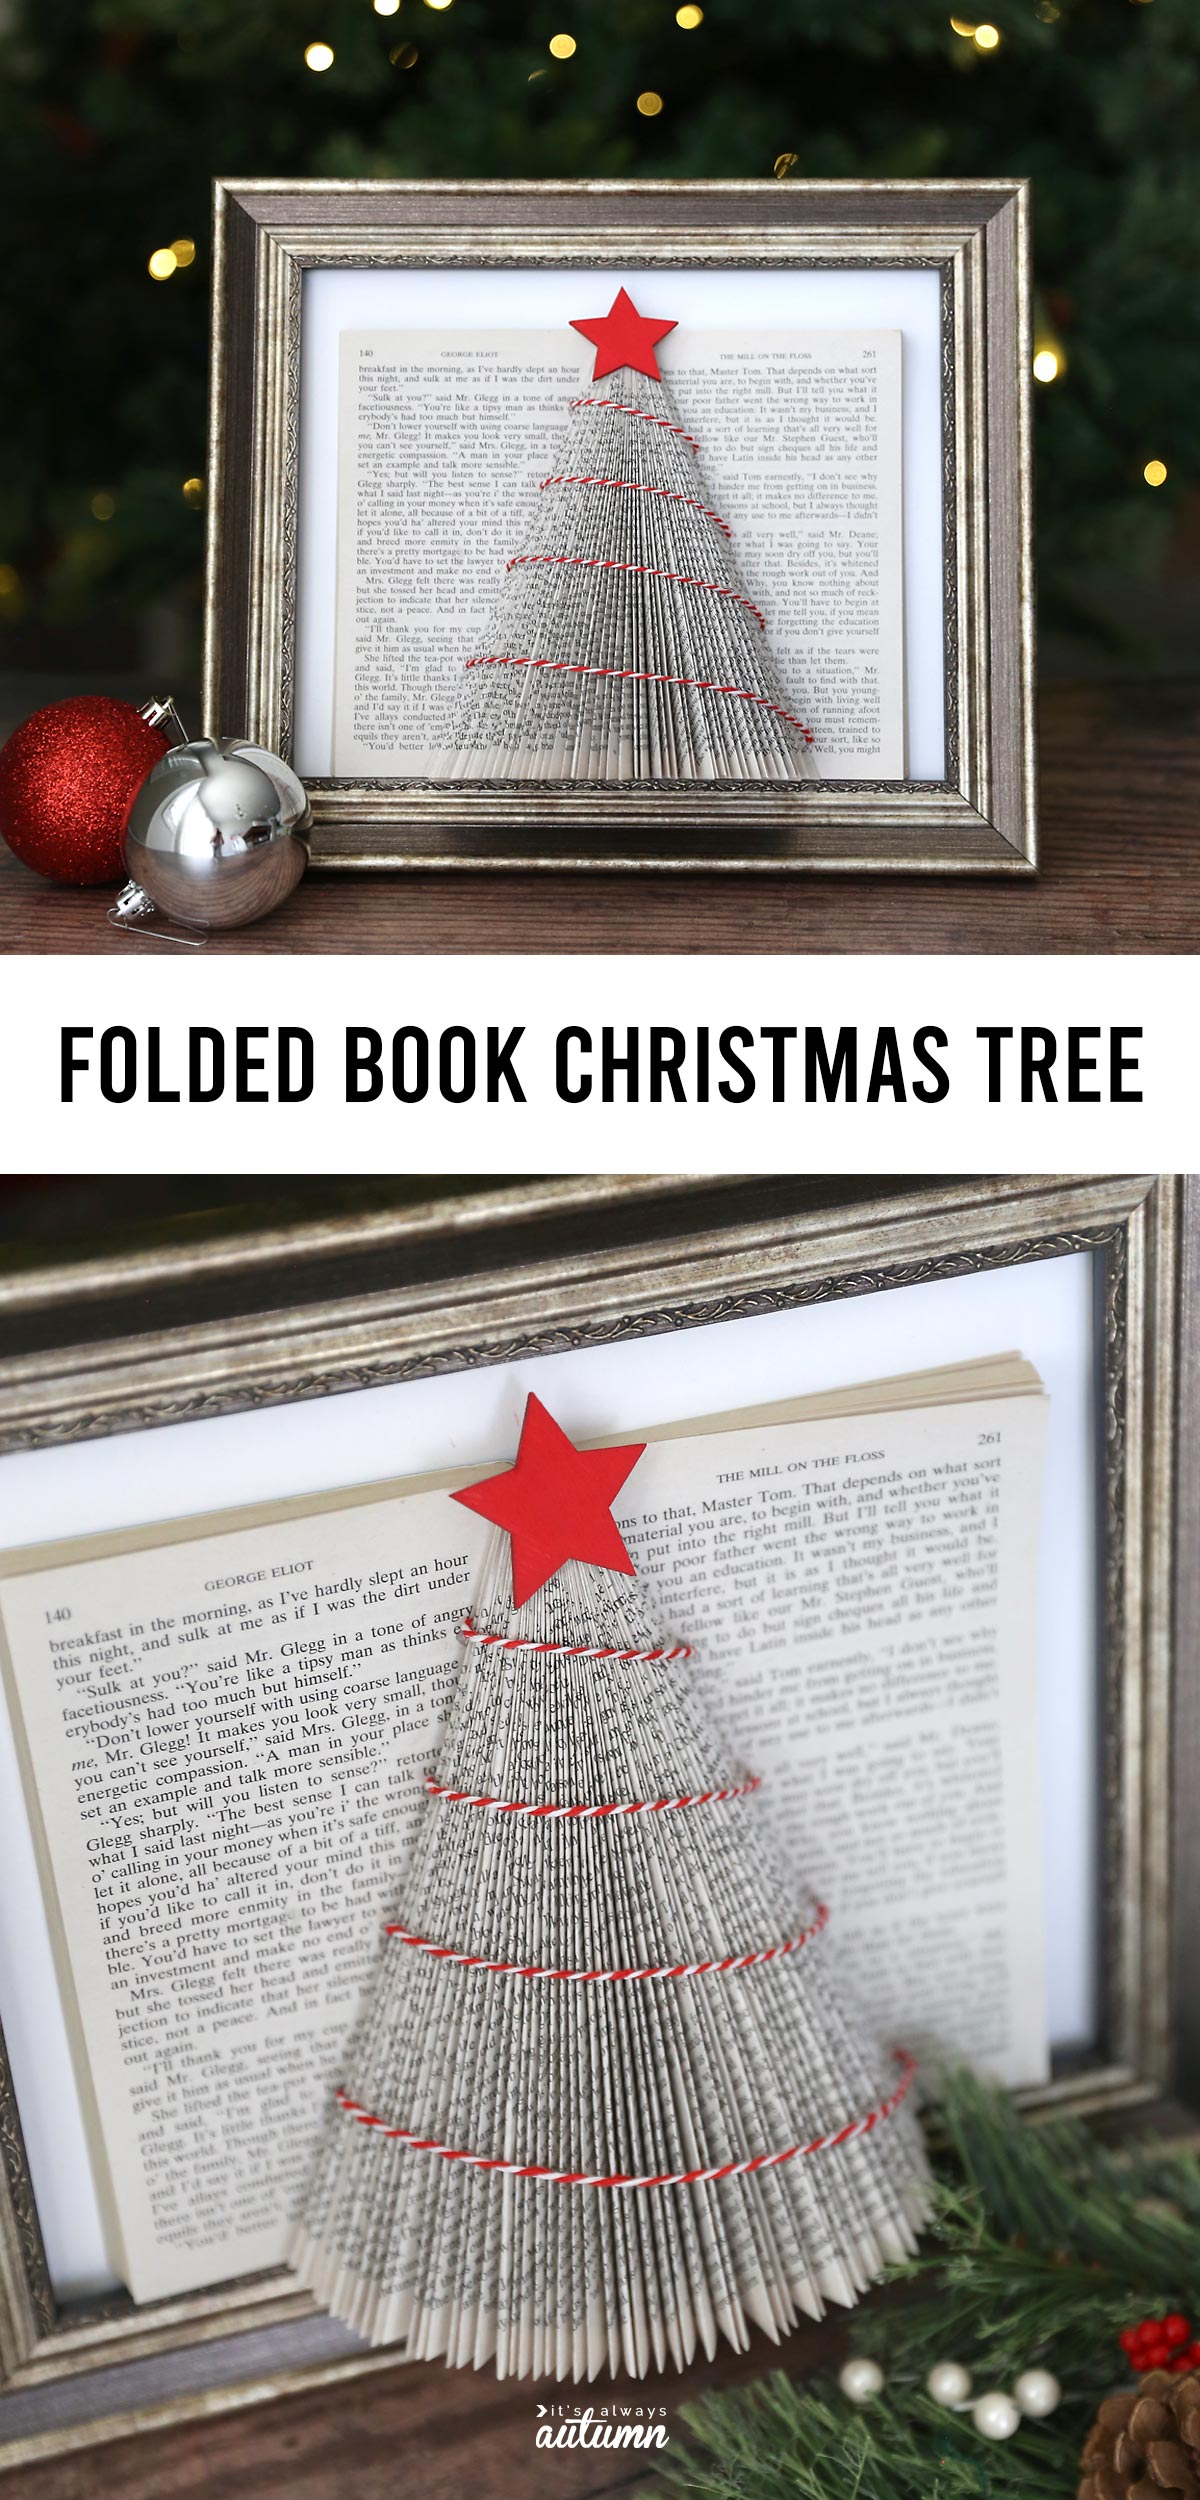 Learn how to make this pretty folded book Christmas tree with an old book from the thrift store. Easy Christmas craft.